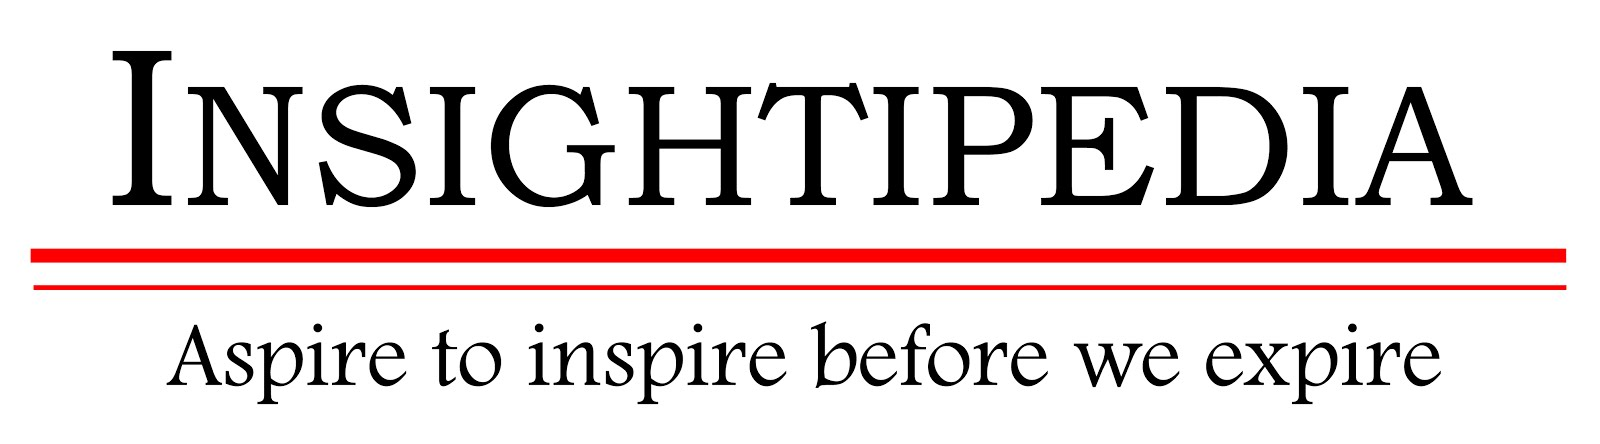 Insightipedia